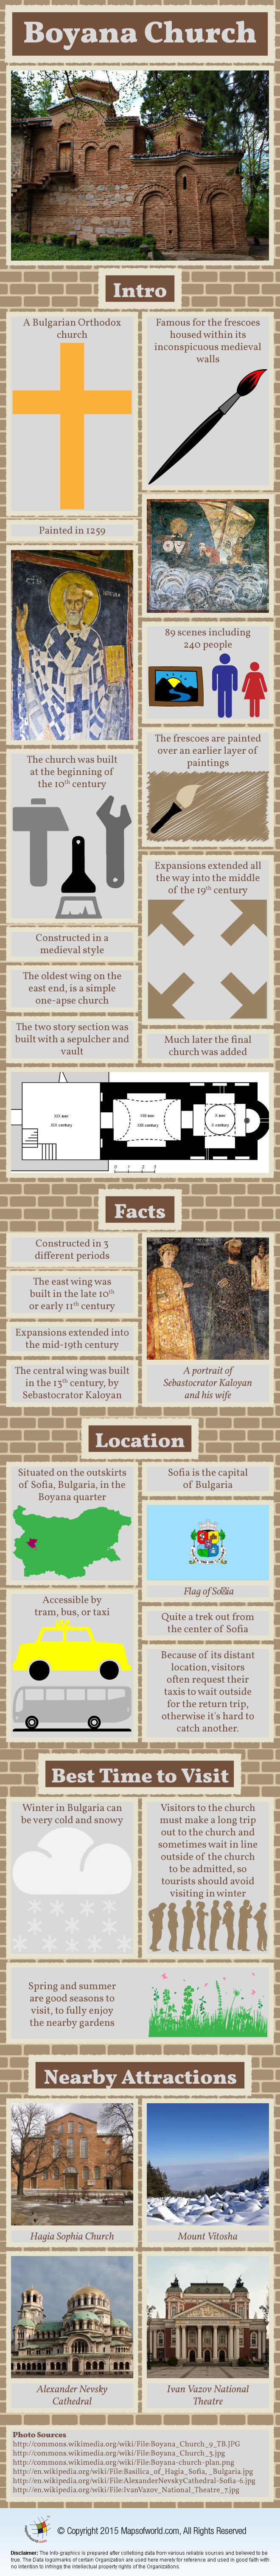 Boyana Church Infographic – Facts about Boyana Church in Sofia, Bulgaria.